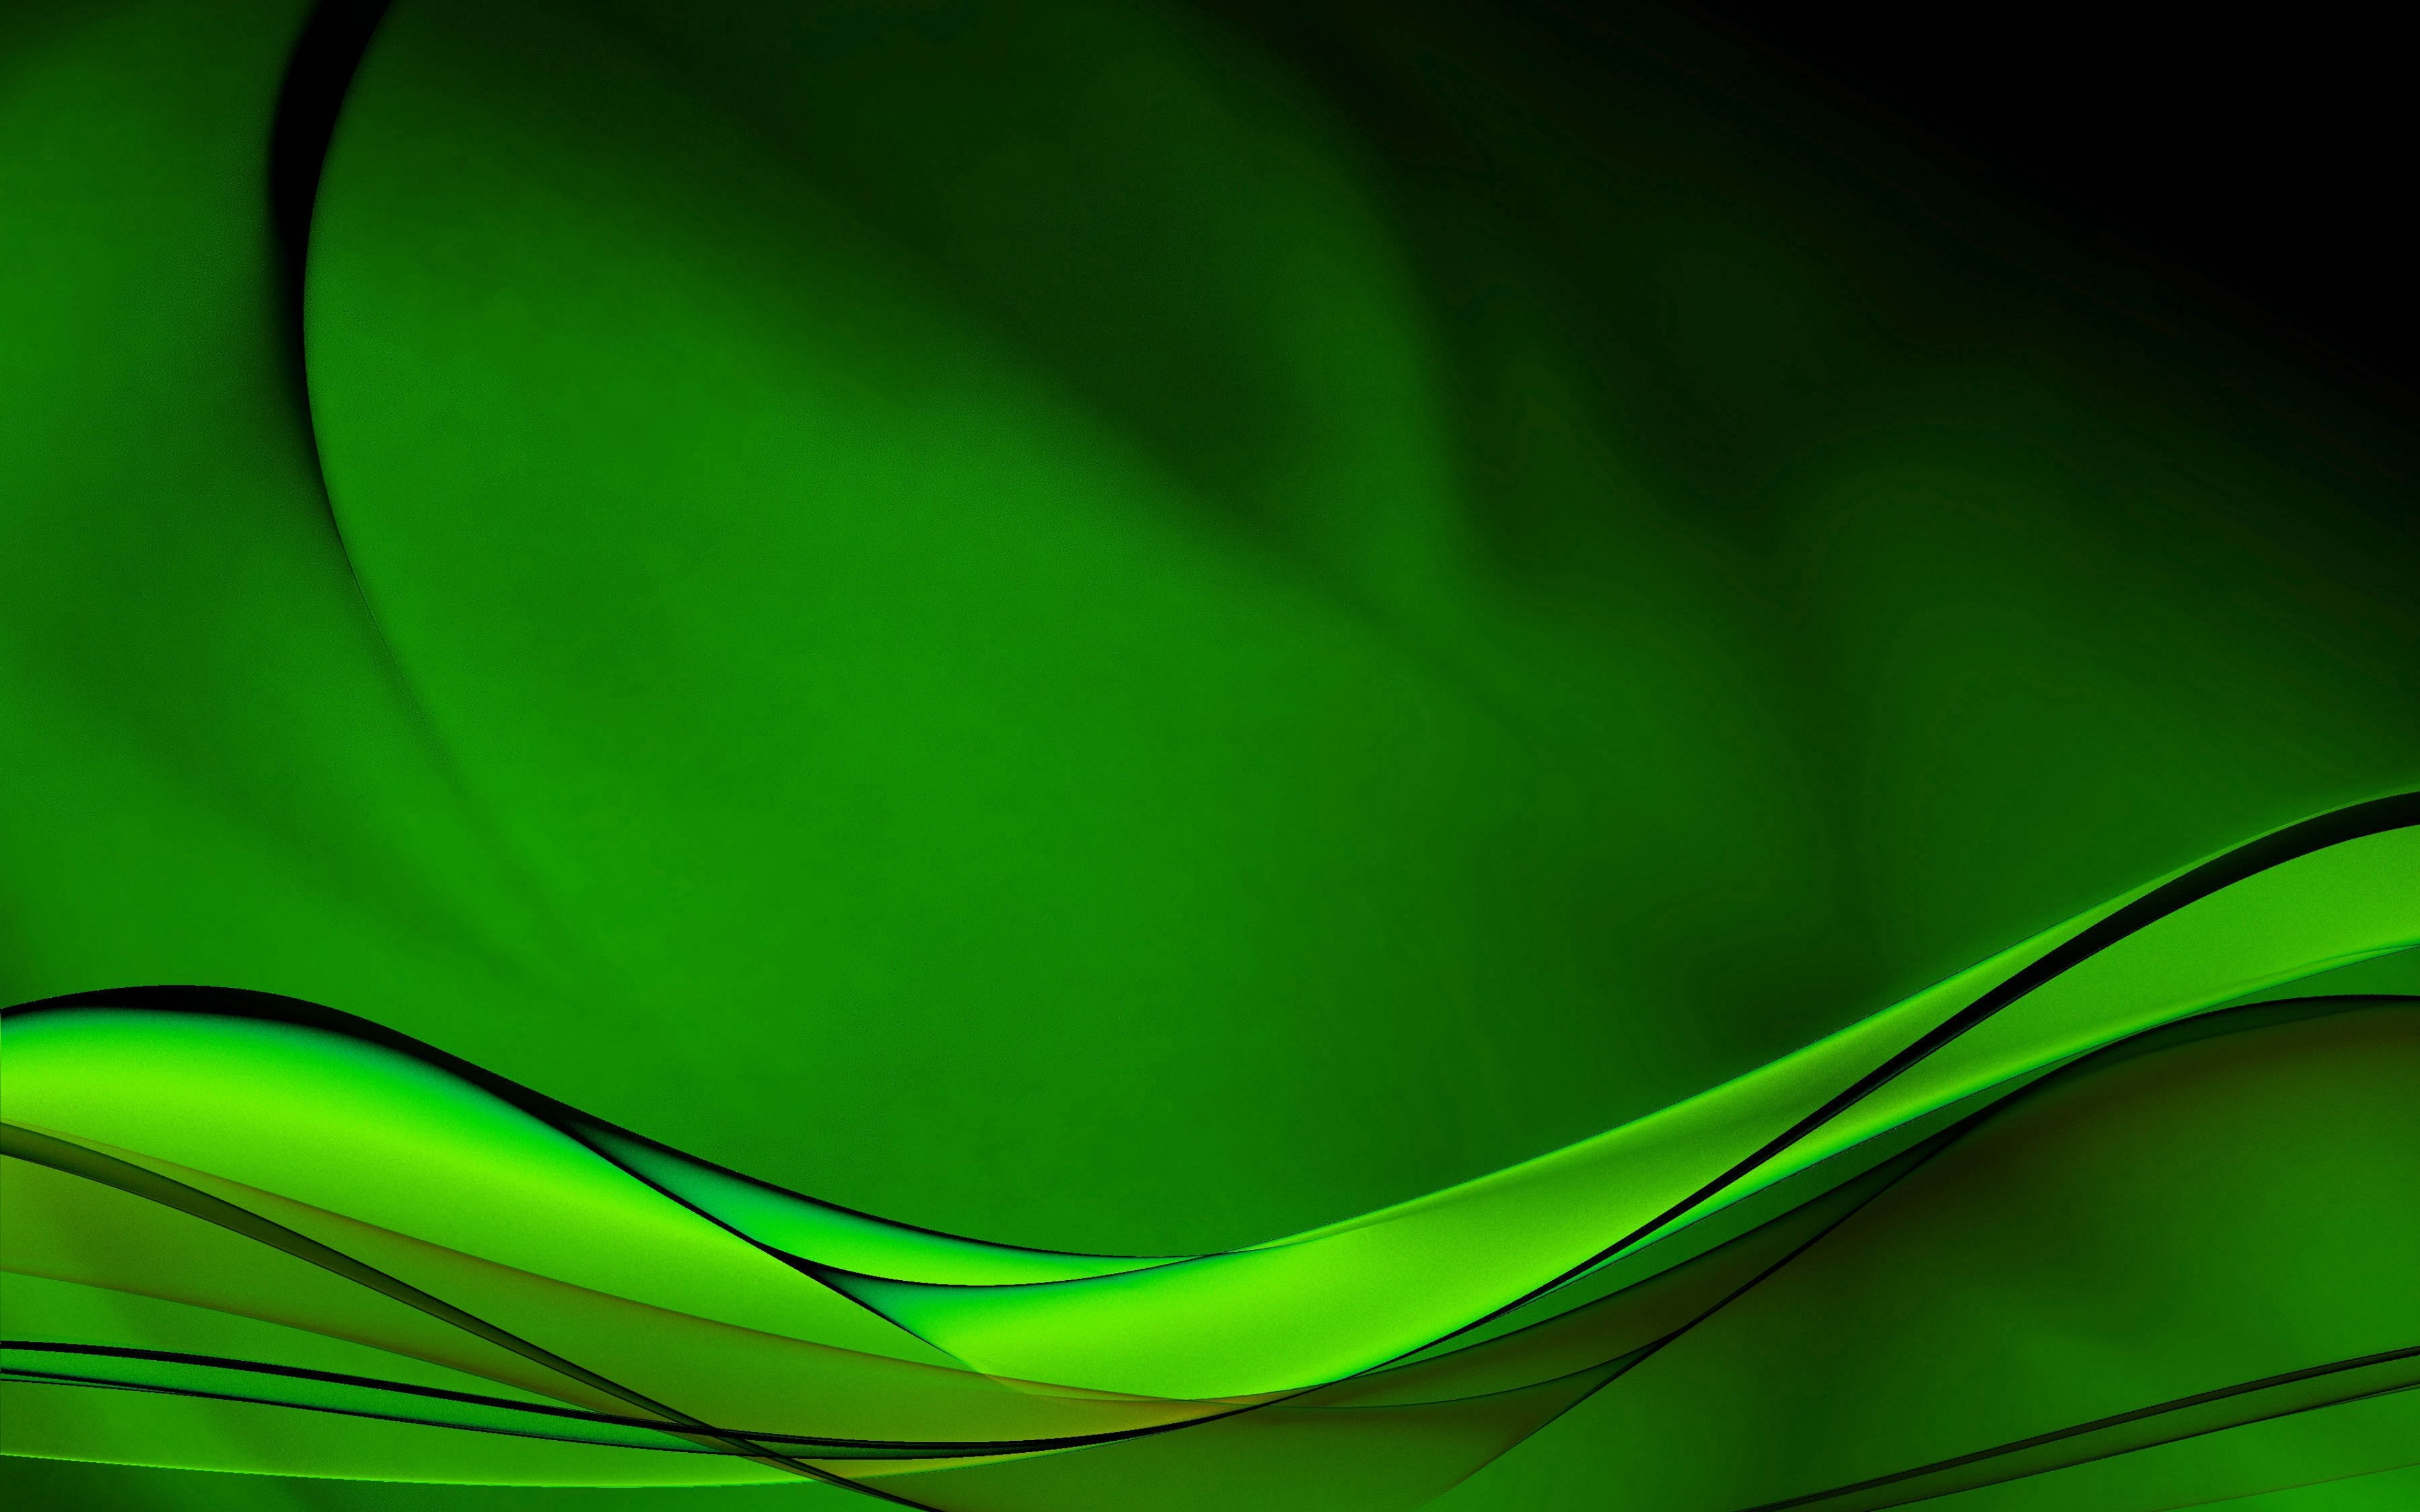 Green Background Images In 2019 Green Backgrounds